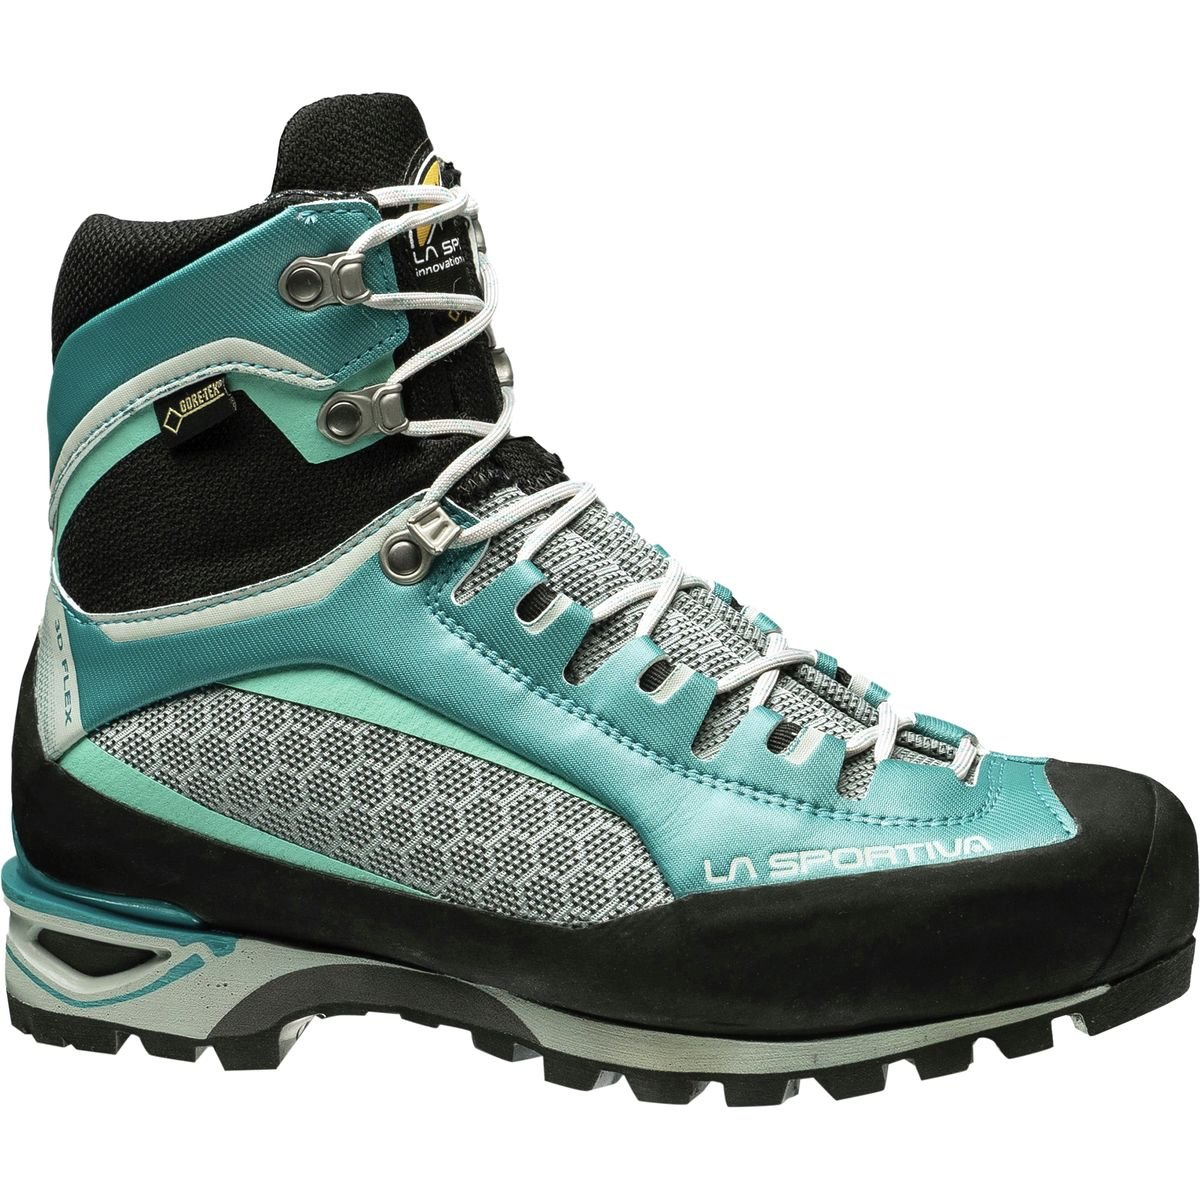 La Sportiva Trango Tower GTX Mountaineering Boot - Women's B01K7VQB1S Medium / 42 M EU / 10 B(M) US|Emerald